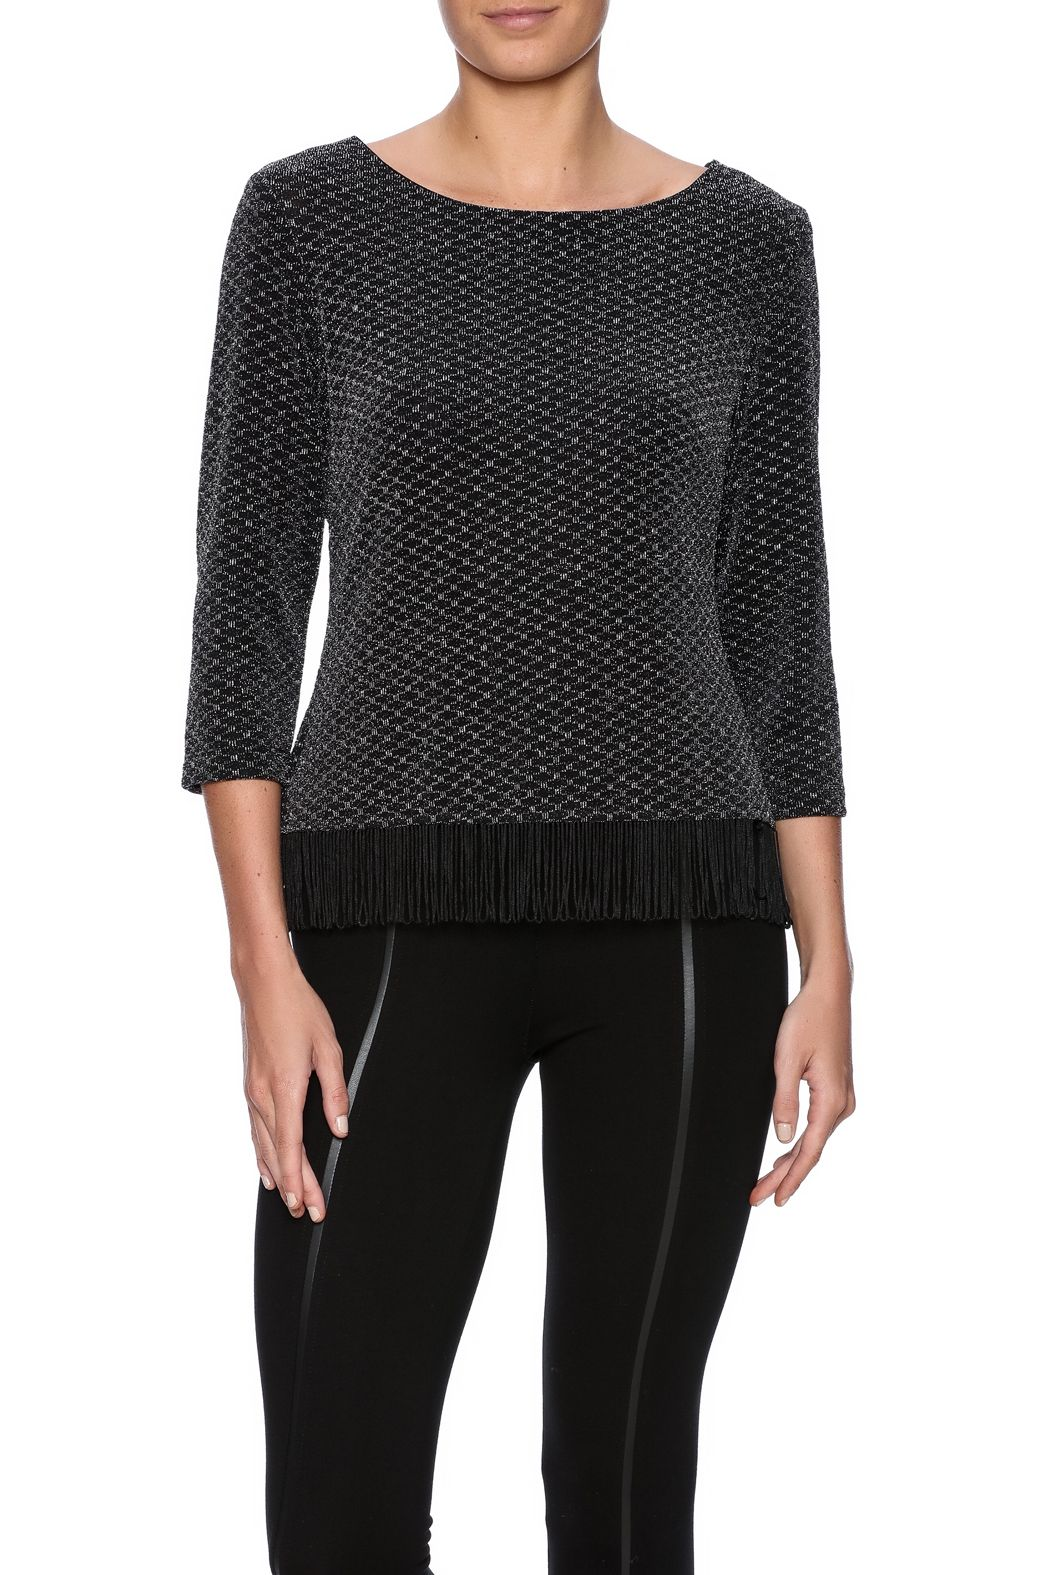 8f83e68b4a7 Black boxy top with metallic thread detail and fringe hem. Crew neck and 3 4  sleeve. Fringe Top by connected apparel. Clothing - Tops - Long Sleeve  Clothing ...